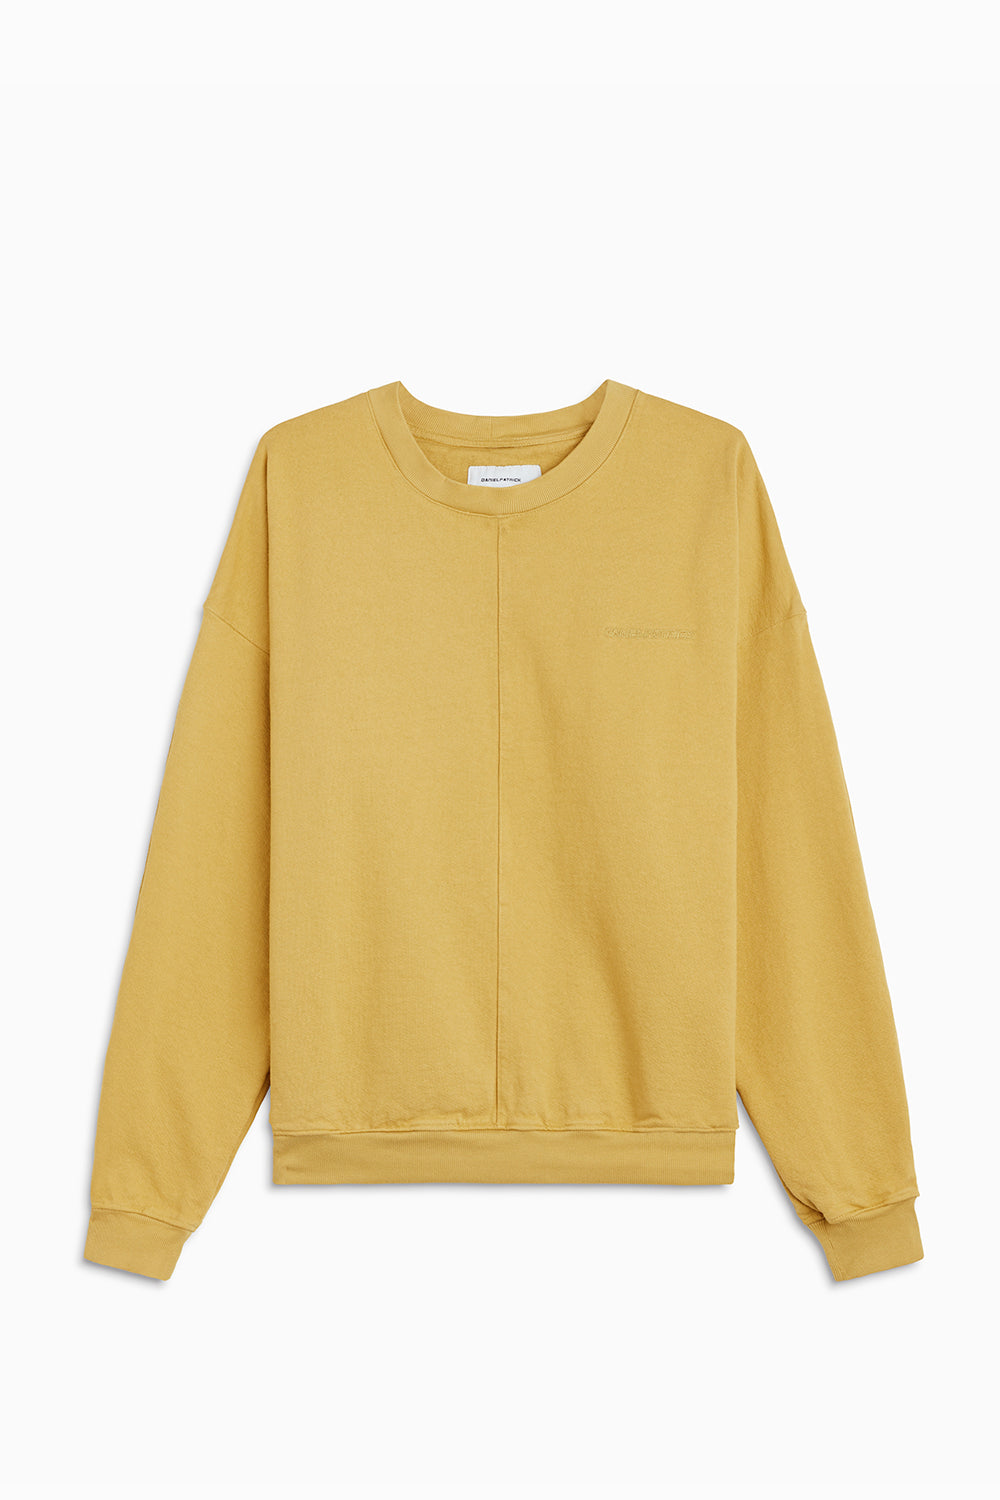 pullover crew neck sweatshirt / mustard yellow